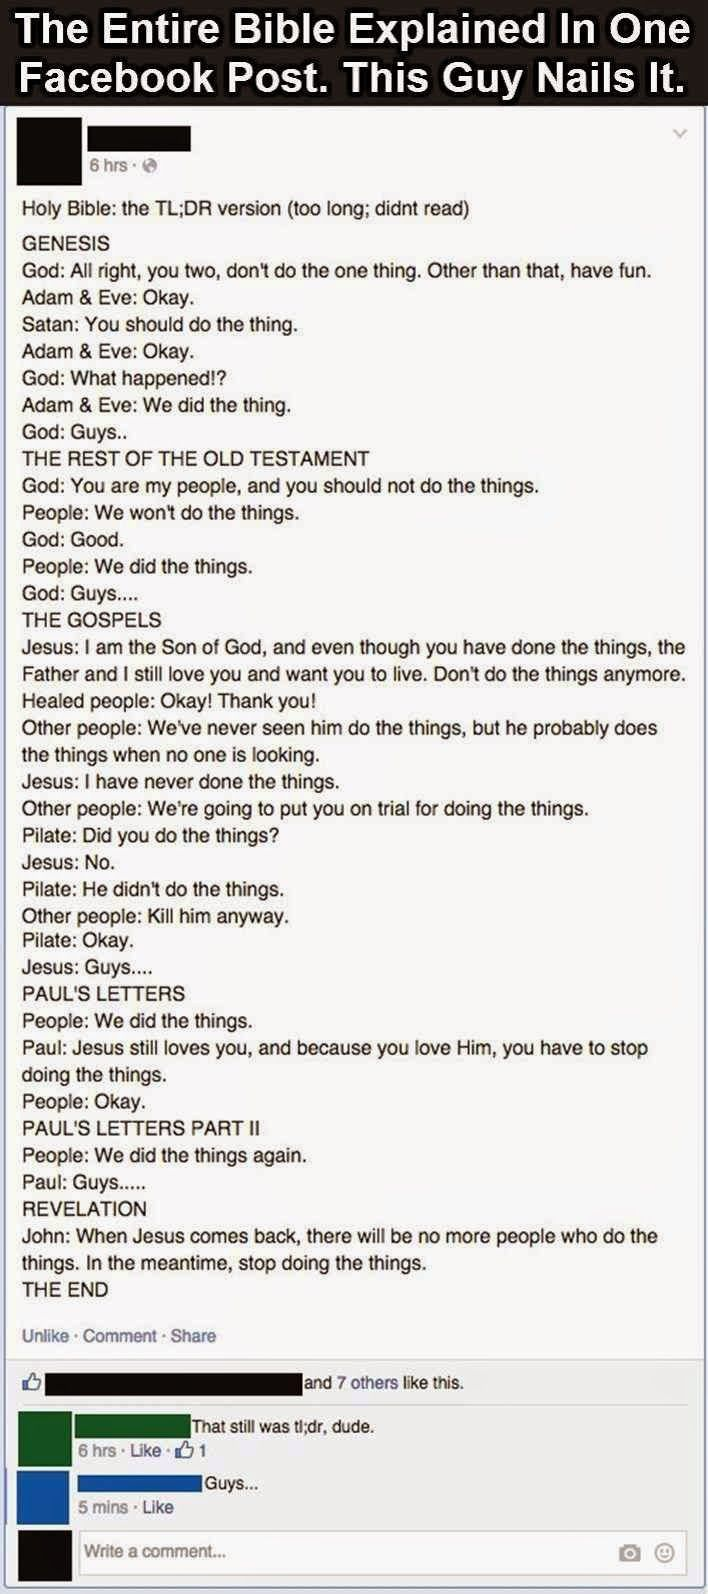 The Entire Bible explained in one Facebook post! For the love of God...stop doing the things!!